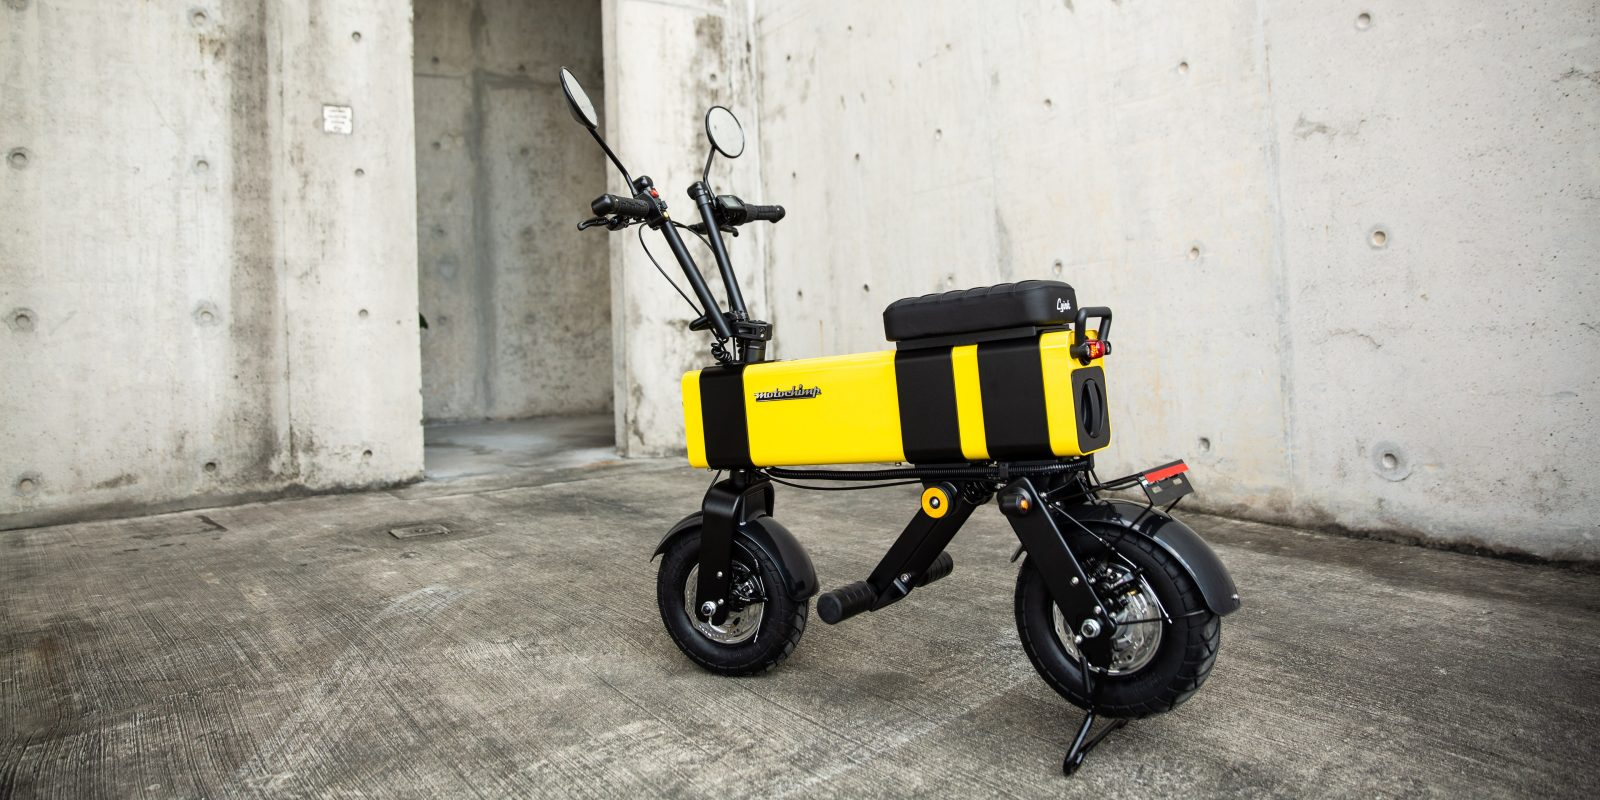 This Cute Little Motochimp V2 Electric Scooter Is A 28 Mph Urban Commuter